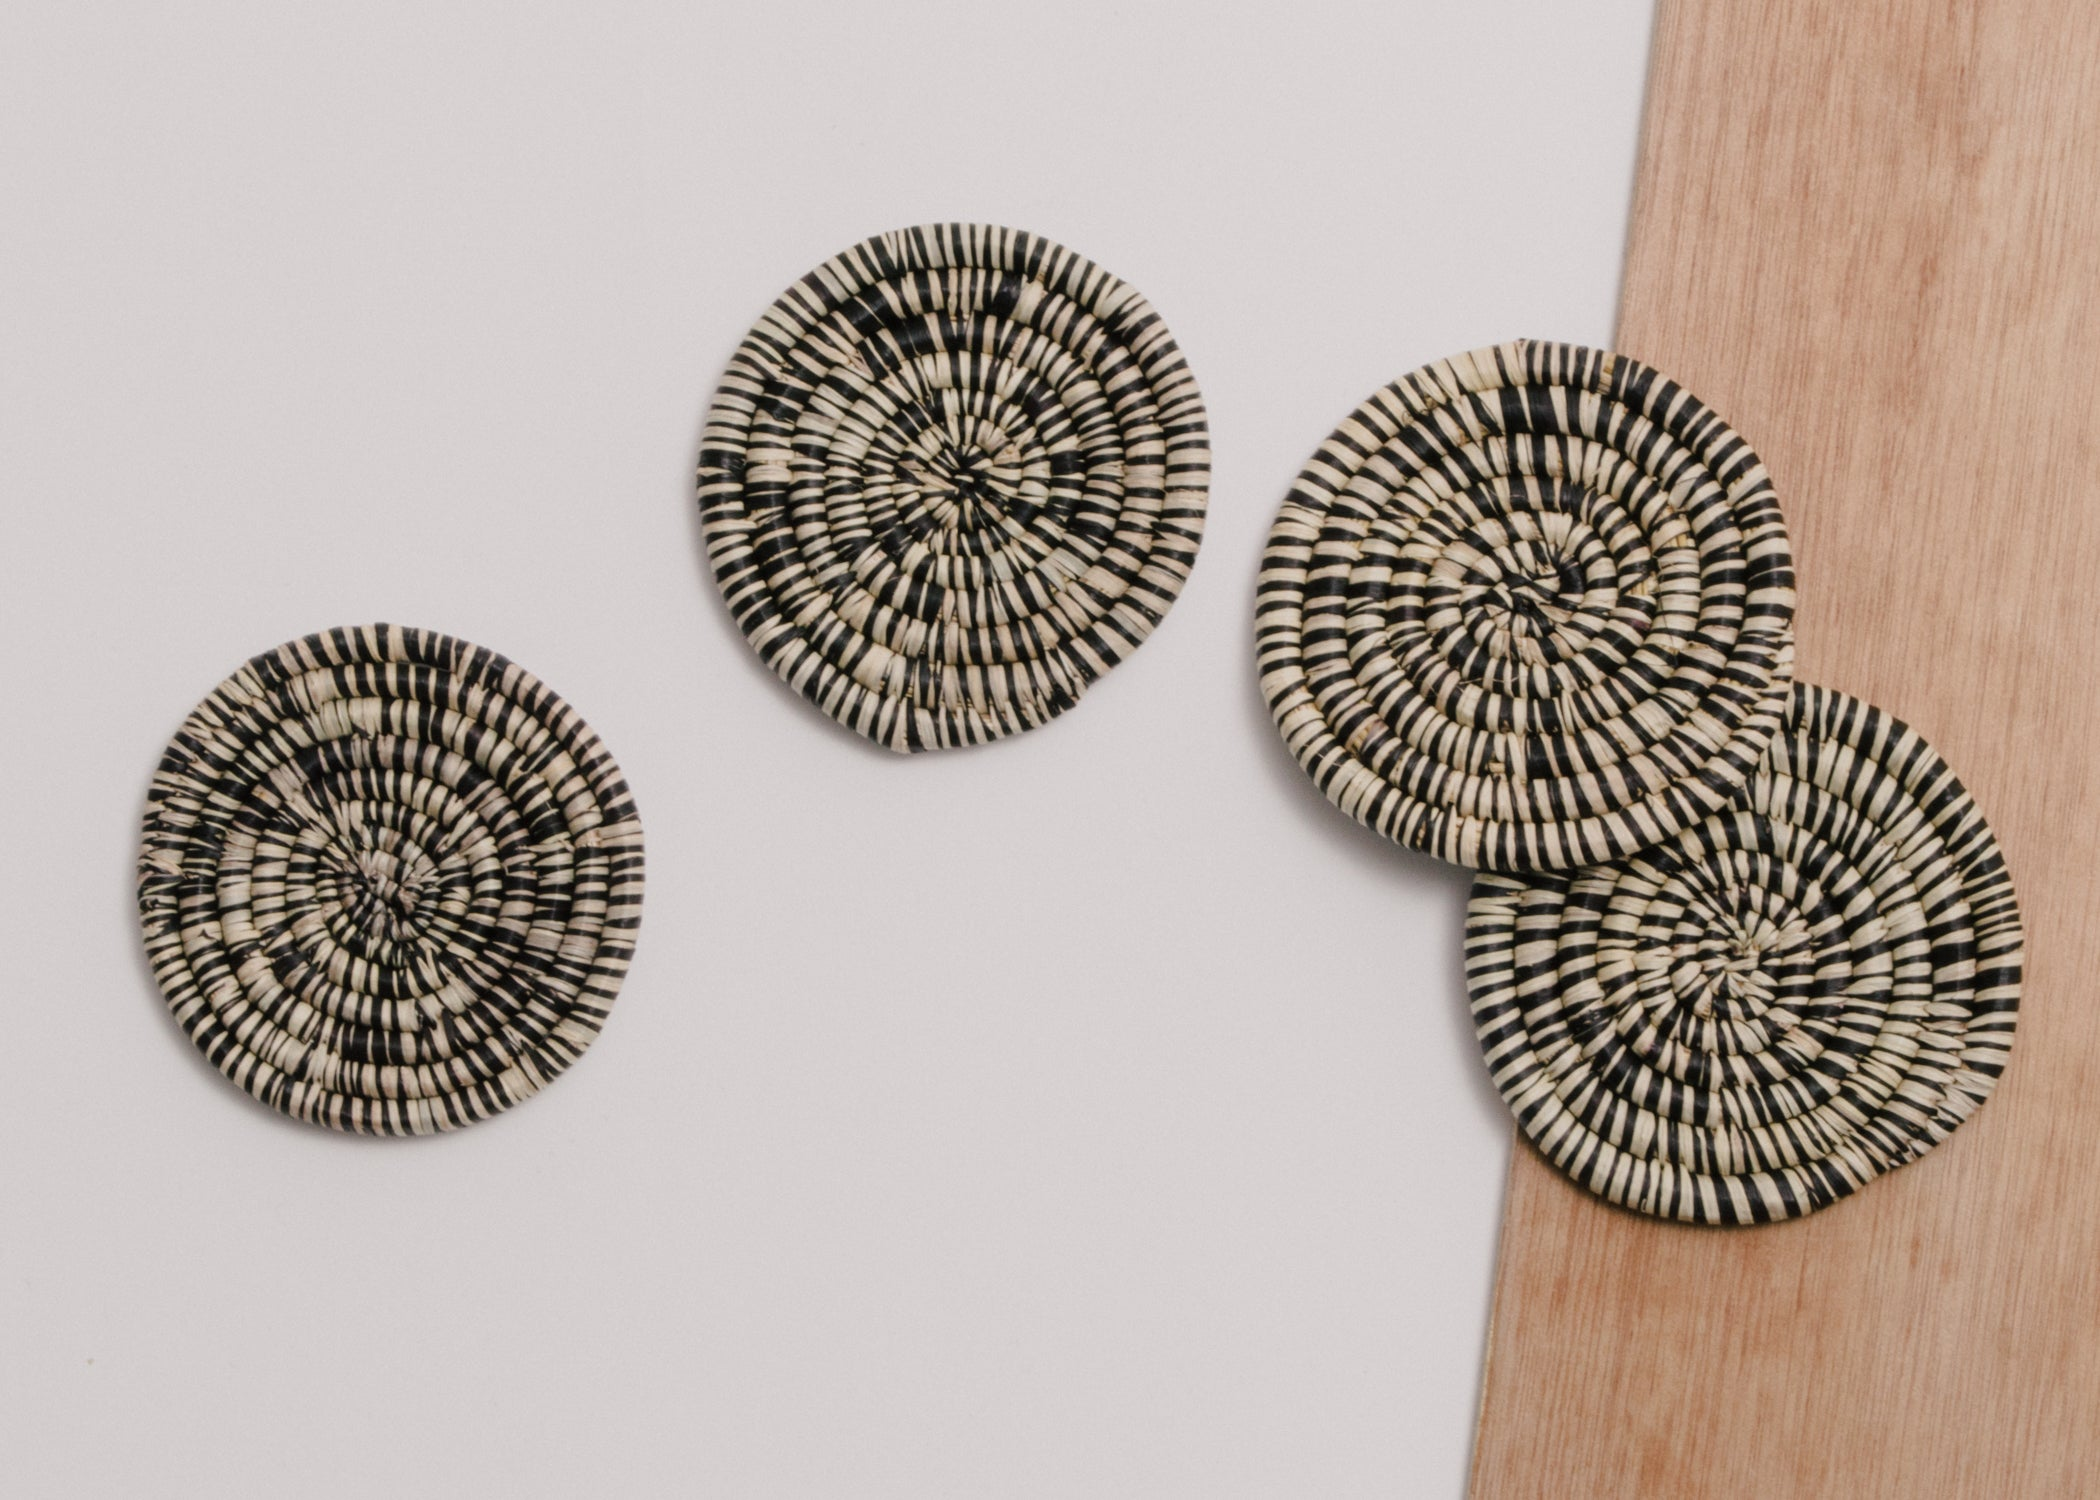 Heathered Black + Natural Raffia Drink Coasters, Set of 4 - KAZI - Artisan made high quality home decor and wall art